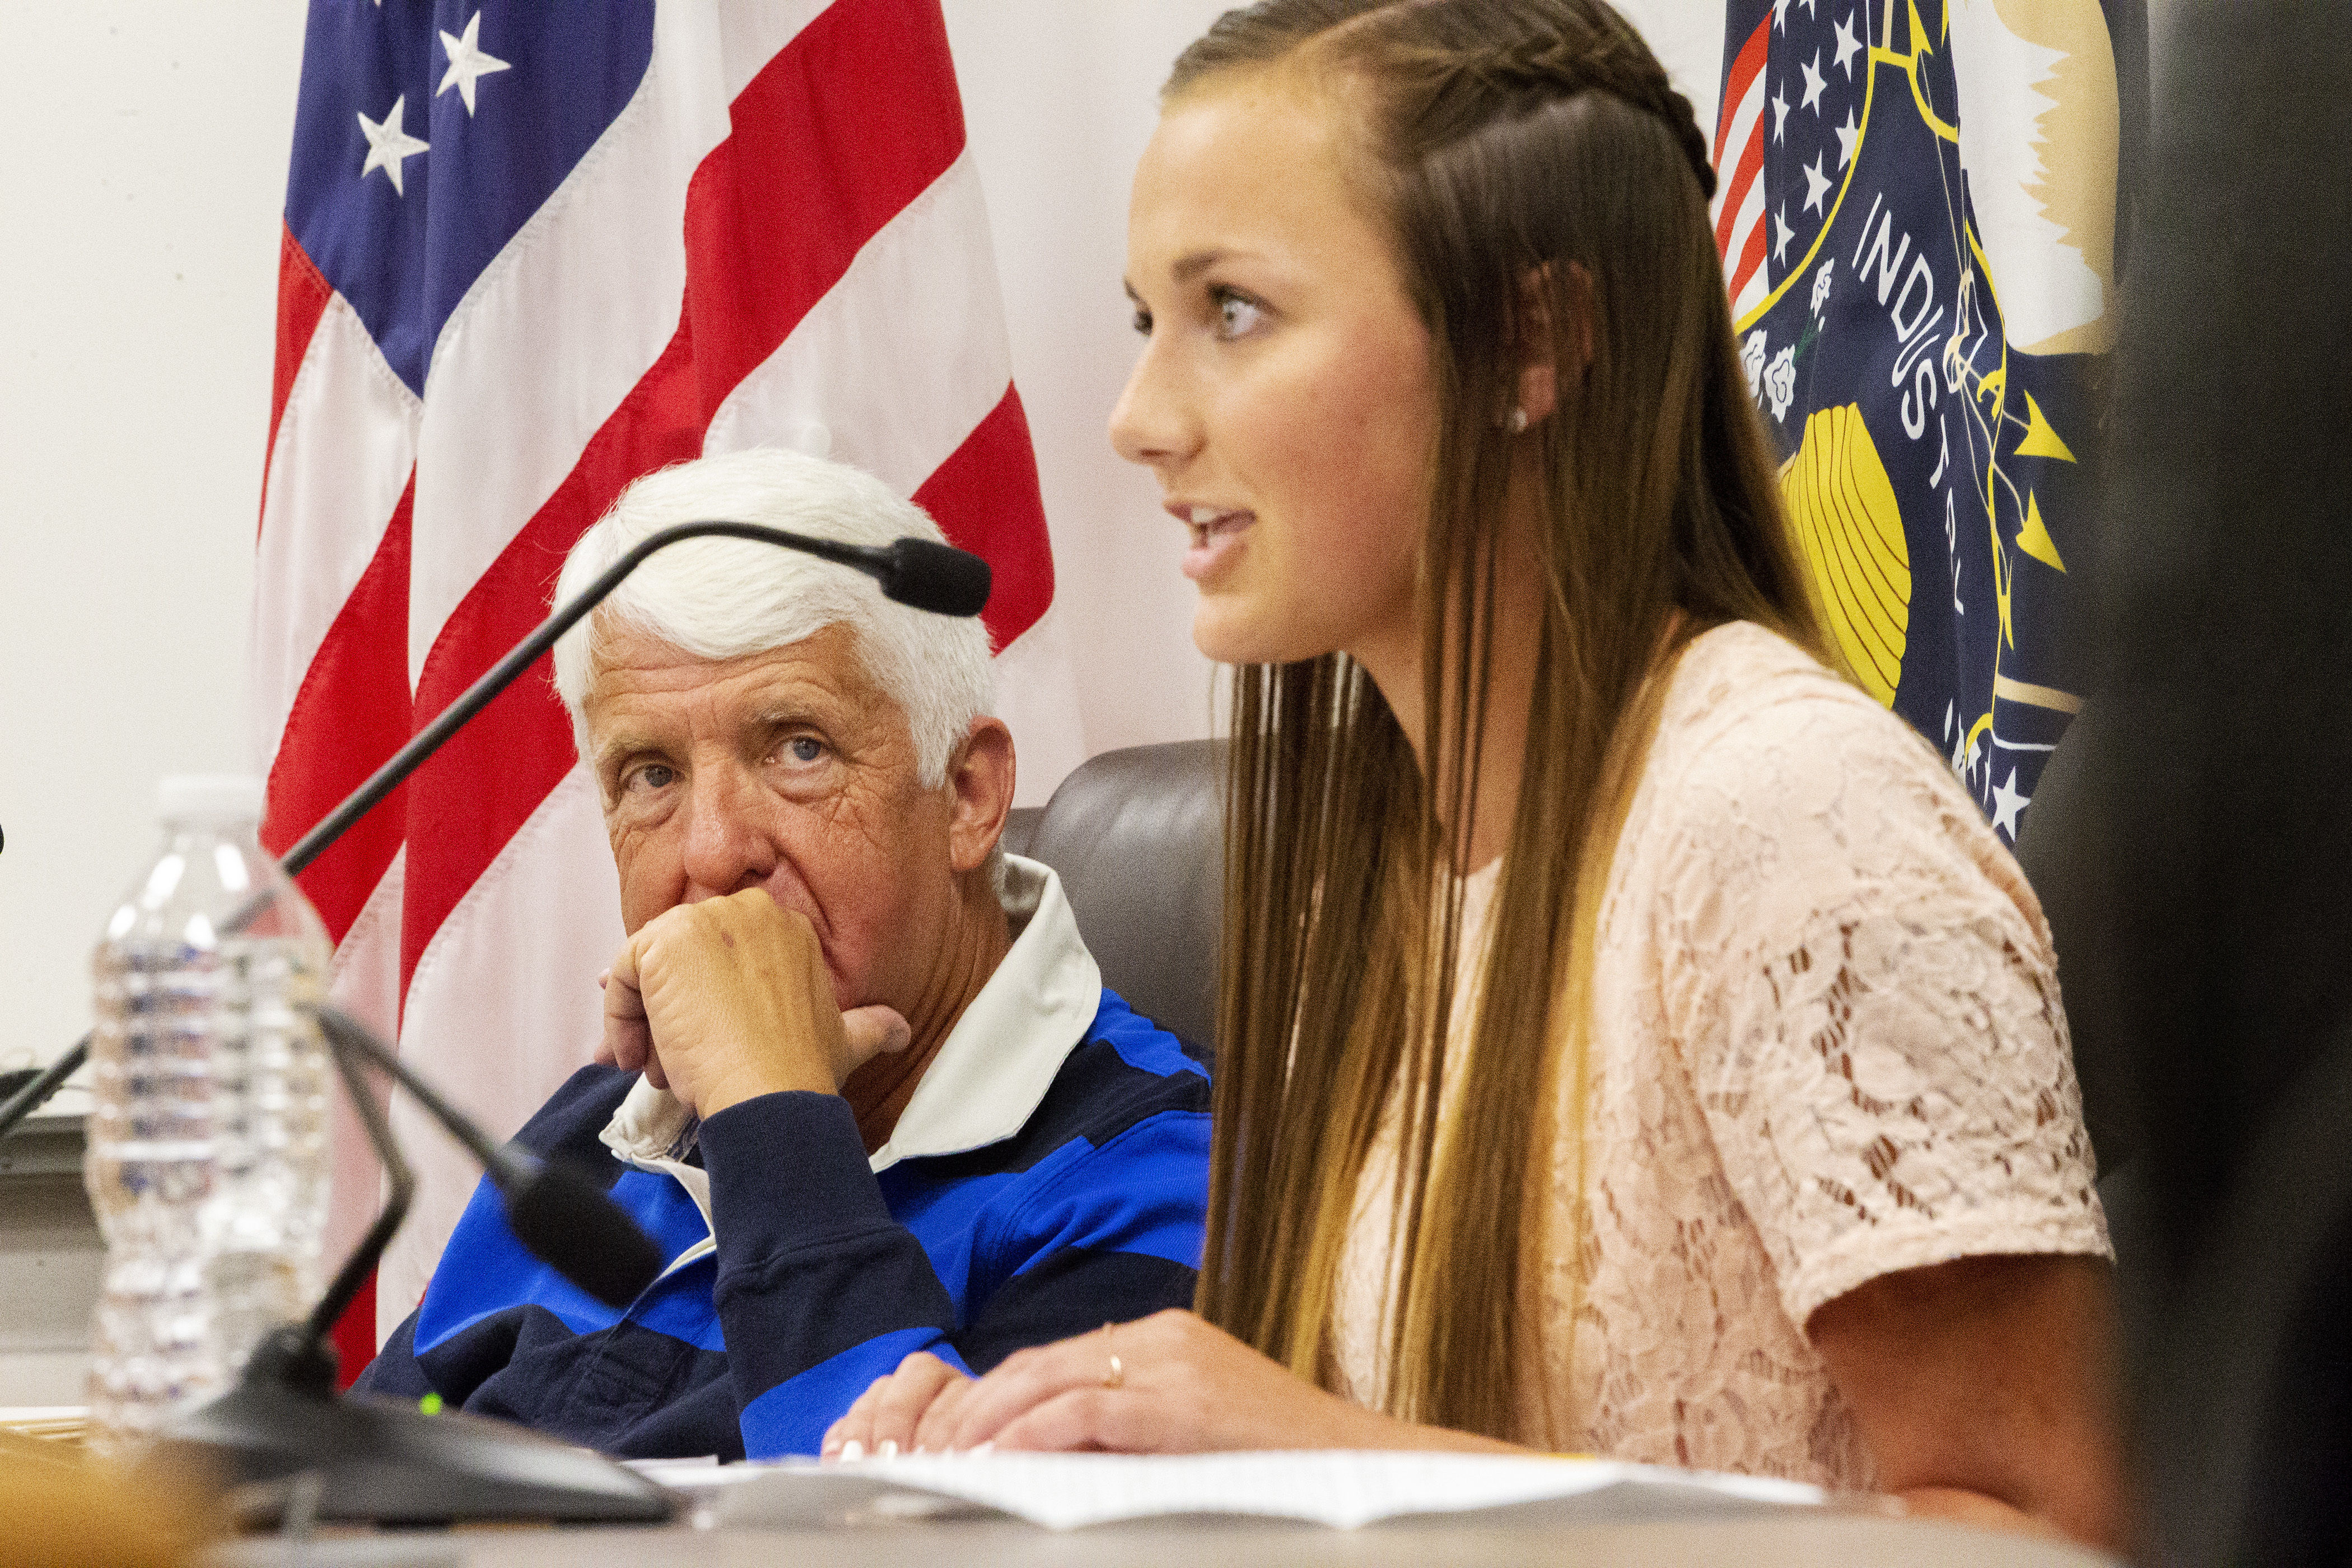 Rep. Rob Bishop, R-Utah, listens to Union High School student Annalee Birchell during a field hearing on energy and education at the Roosevelt school on Wednesday, Aug. 29, 2018.